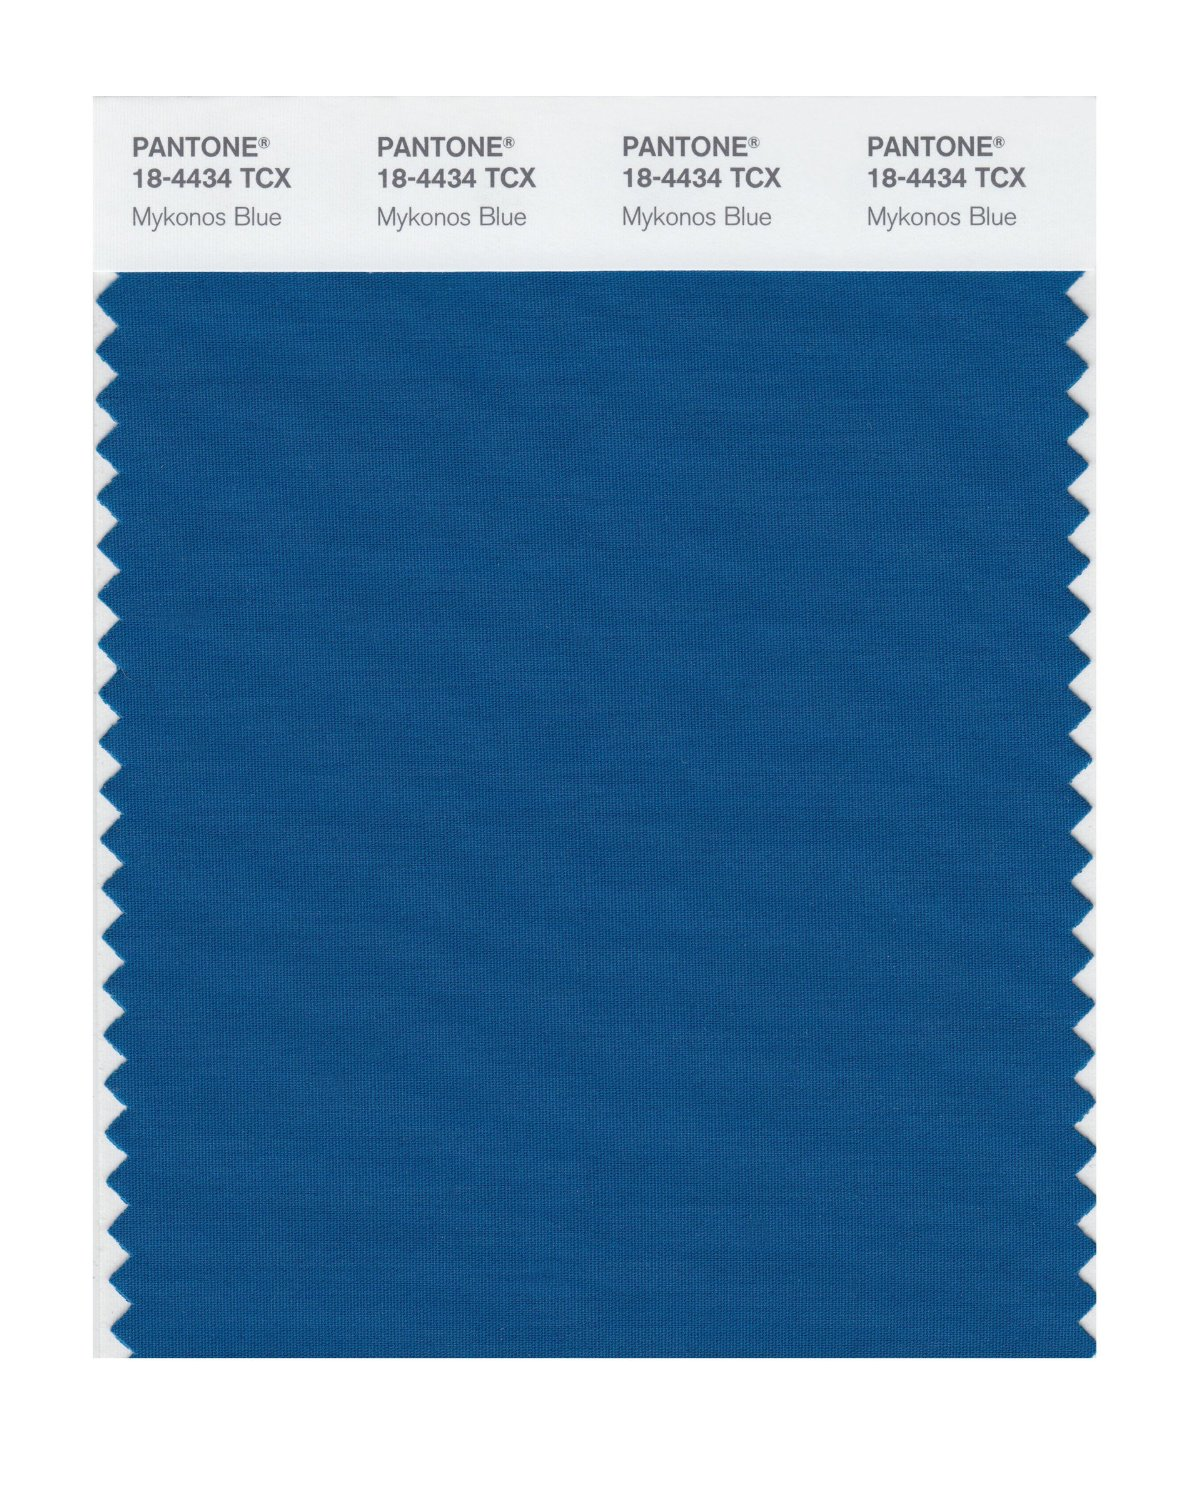 Pantone Smart Swatch 18-4434 Mykonos Blue